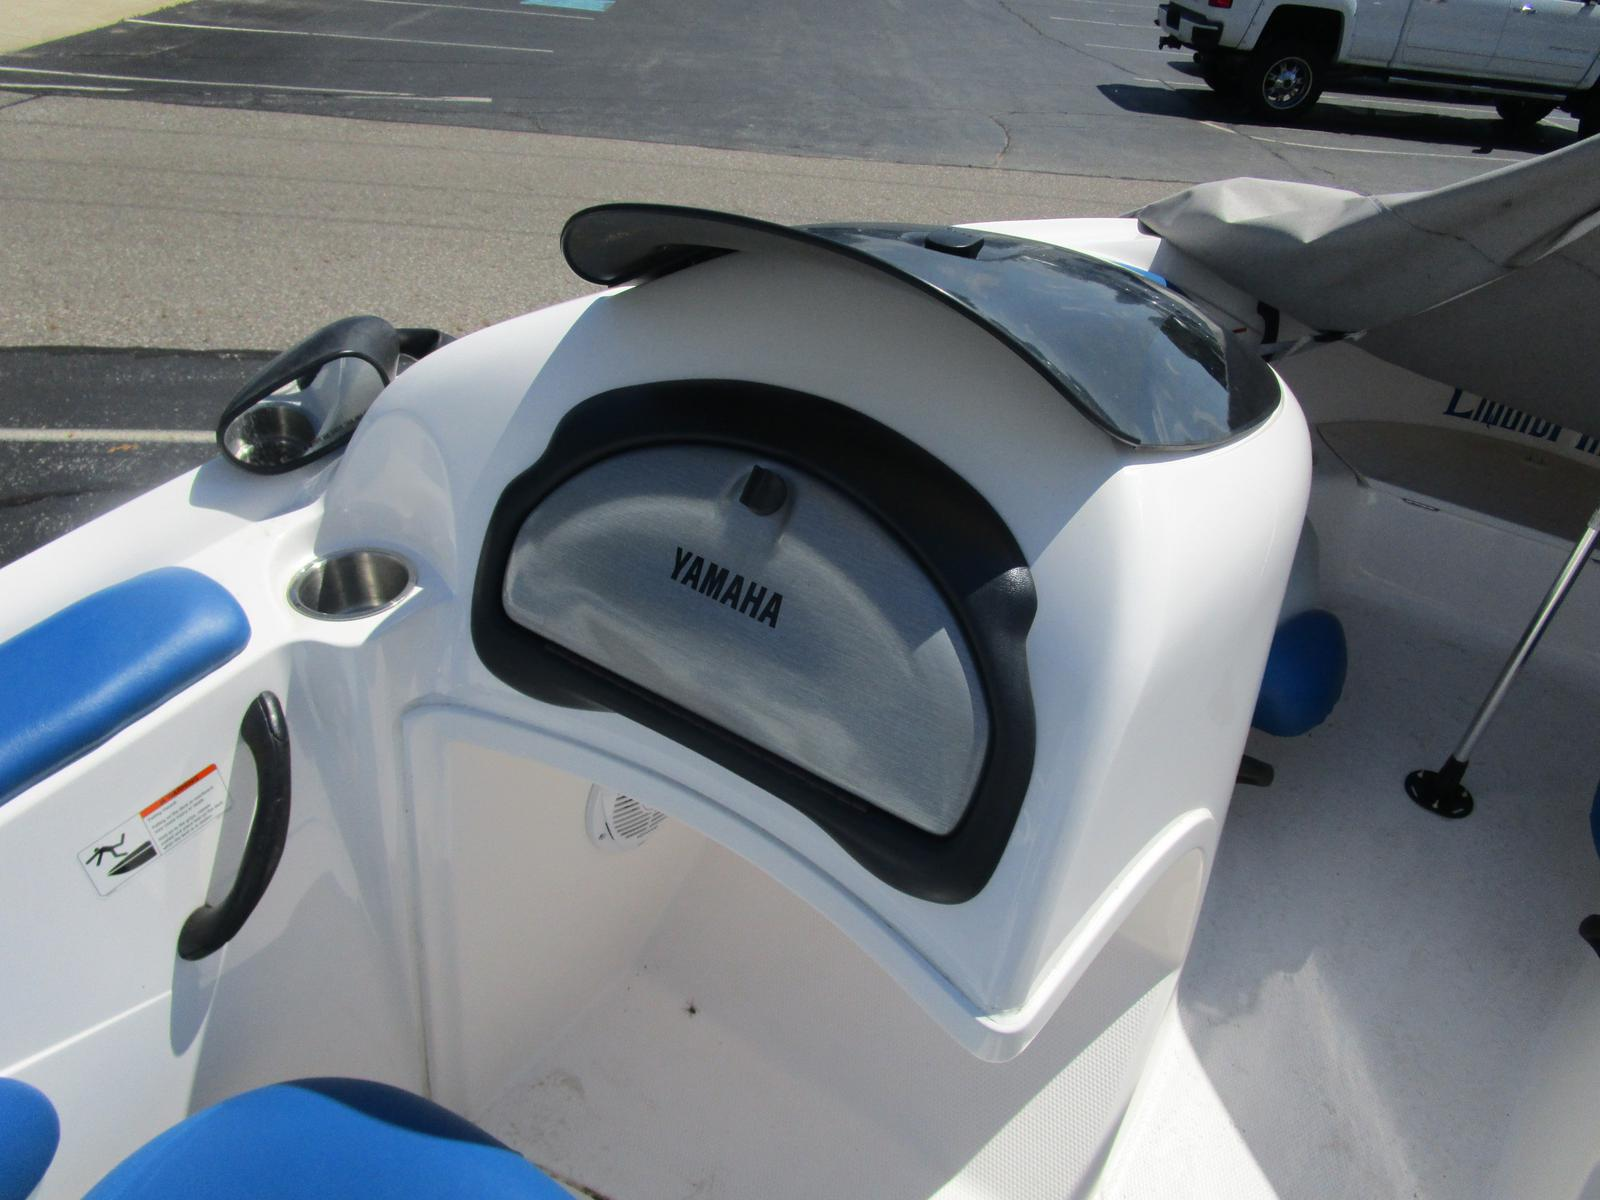 2002 Yamaha boat for sale, model of the boat is LX 2000 & Image # 4 of 5